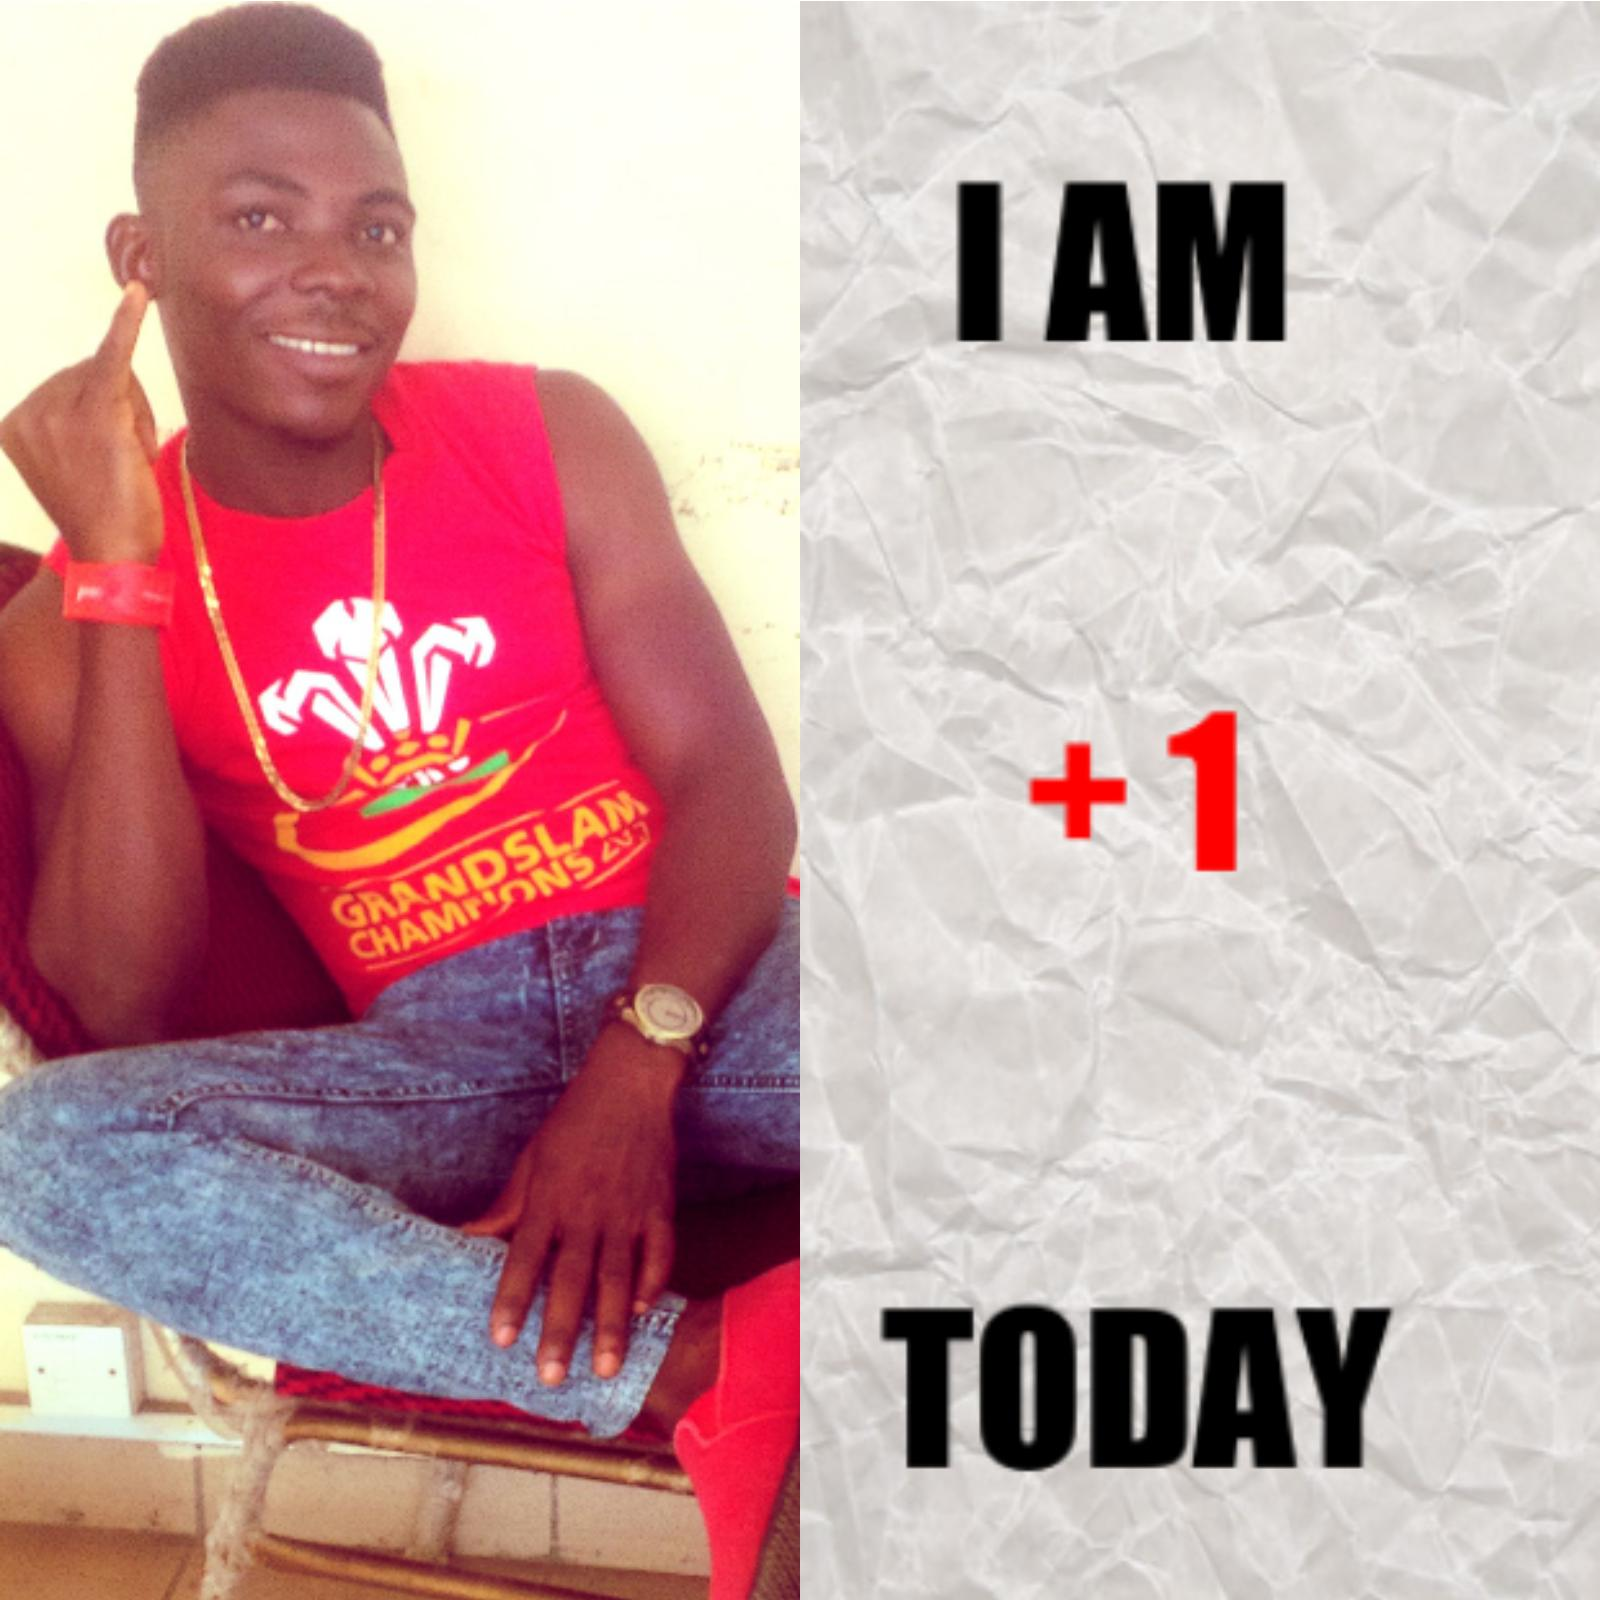 i am plus one today happy birthday to me thank you god for giving me another year